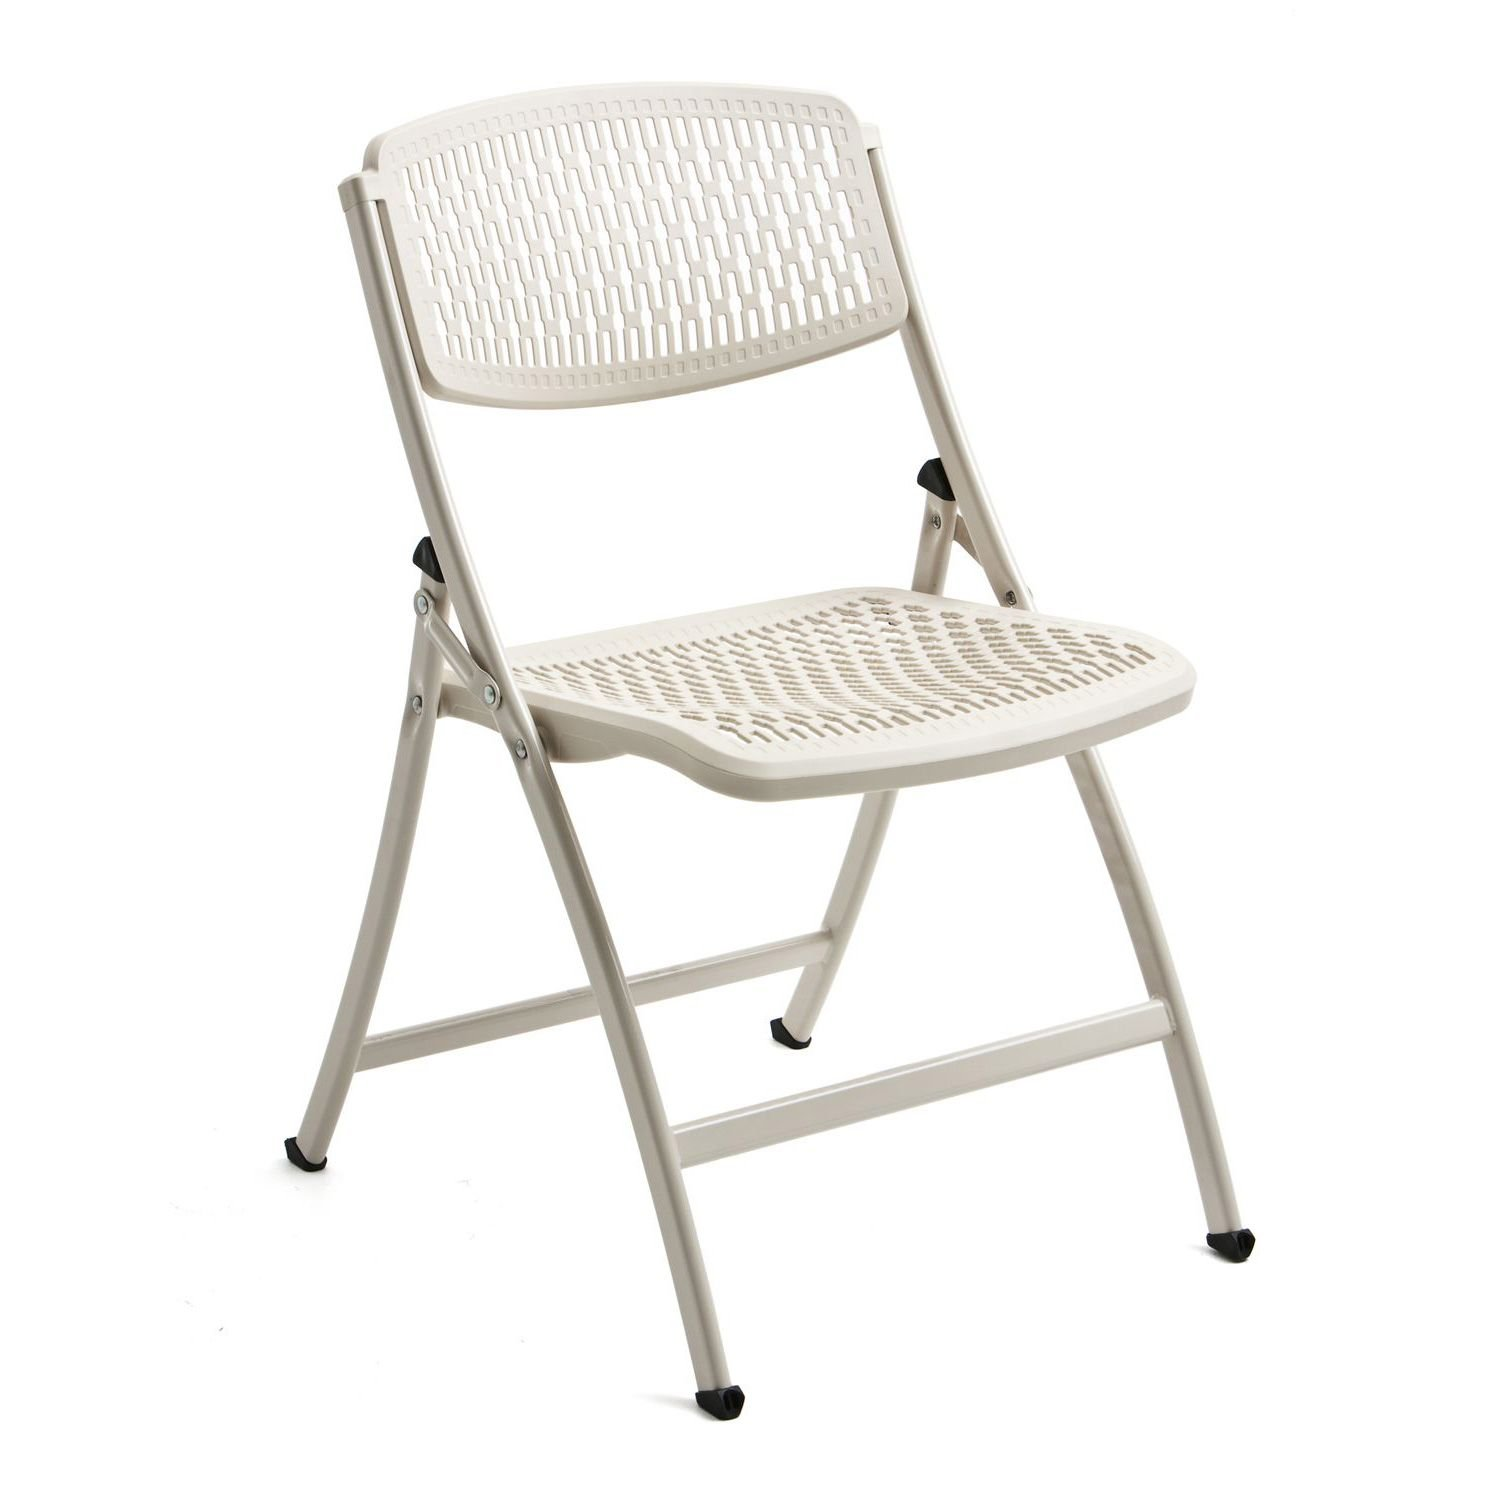 Amazing Mity Lite Flex One Folding Chair White Amazon Co Uk Beatyapartments Chair Design Images Beatyapartmentscom